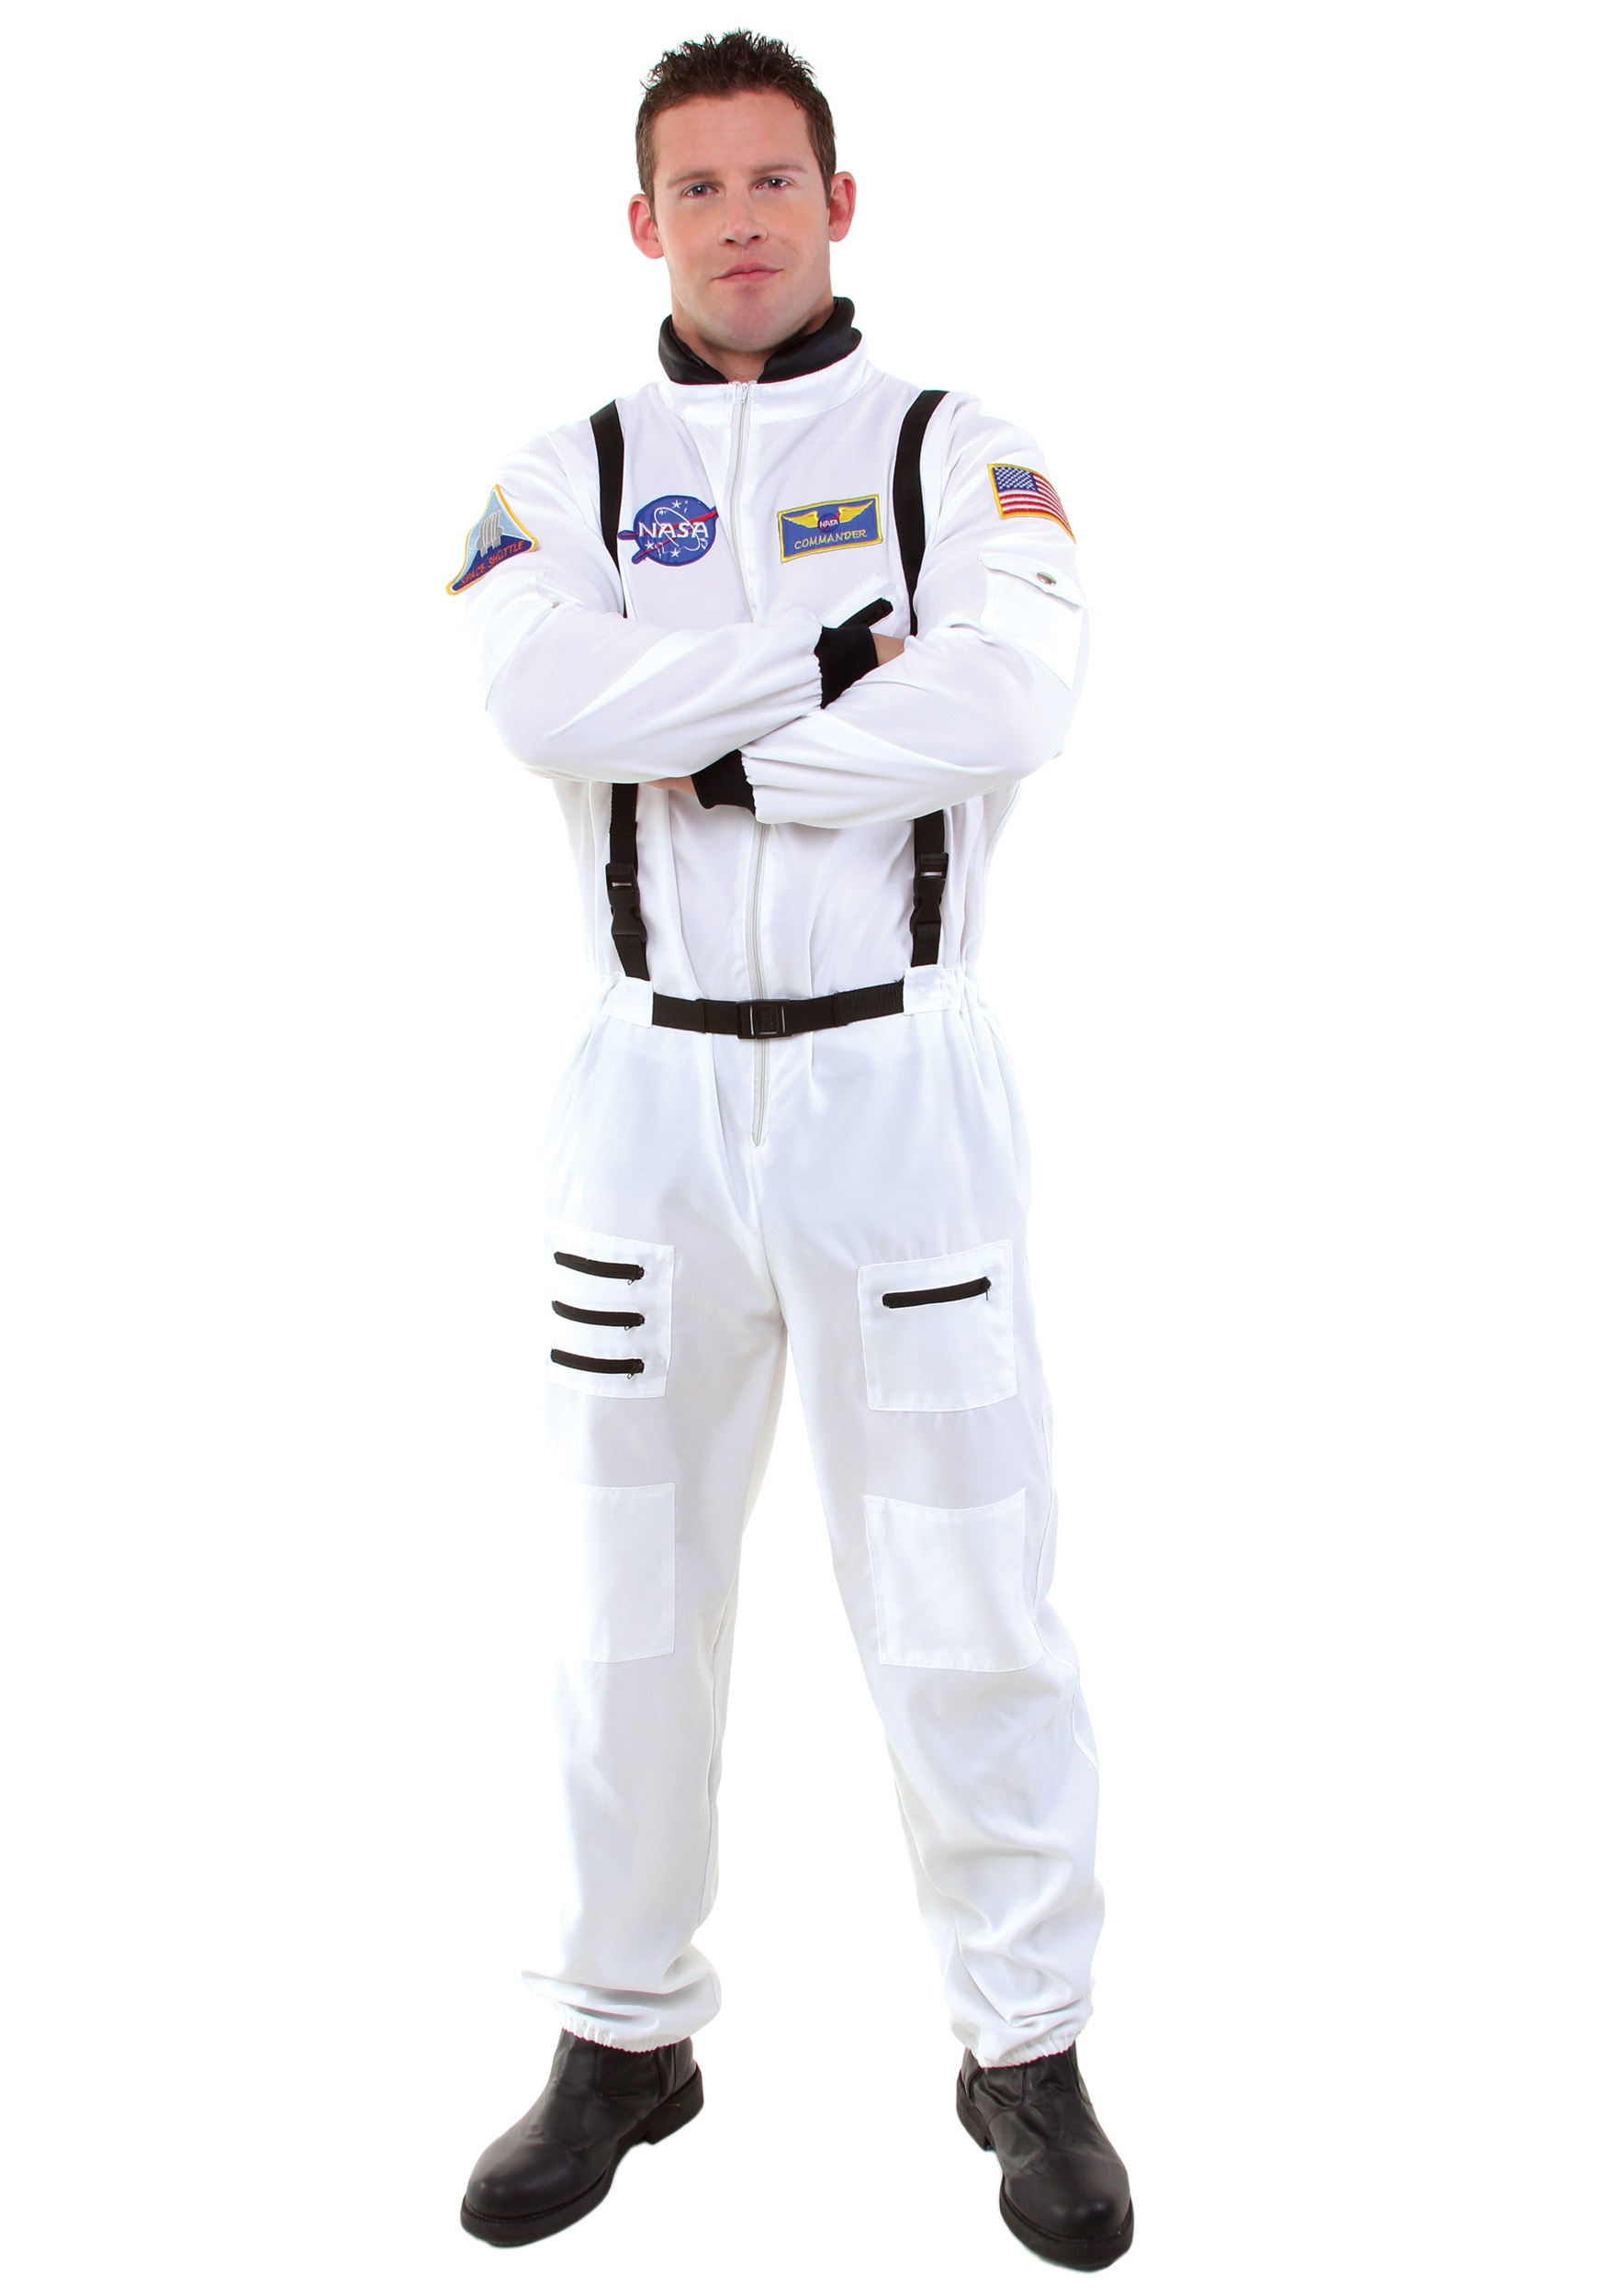 Miccostumes Kids Astronaut White Halloween Helmet Jumpsuit Costume with Gloves Shoes Cover One size. Sold by ErgodE. add to compare compare now. $ $ Aeromax NASA Hat for Kids Pilot or Astronaut Costume Fancy Dress. Sold by 7th Avenue Store. add to compare compare now. $